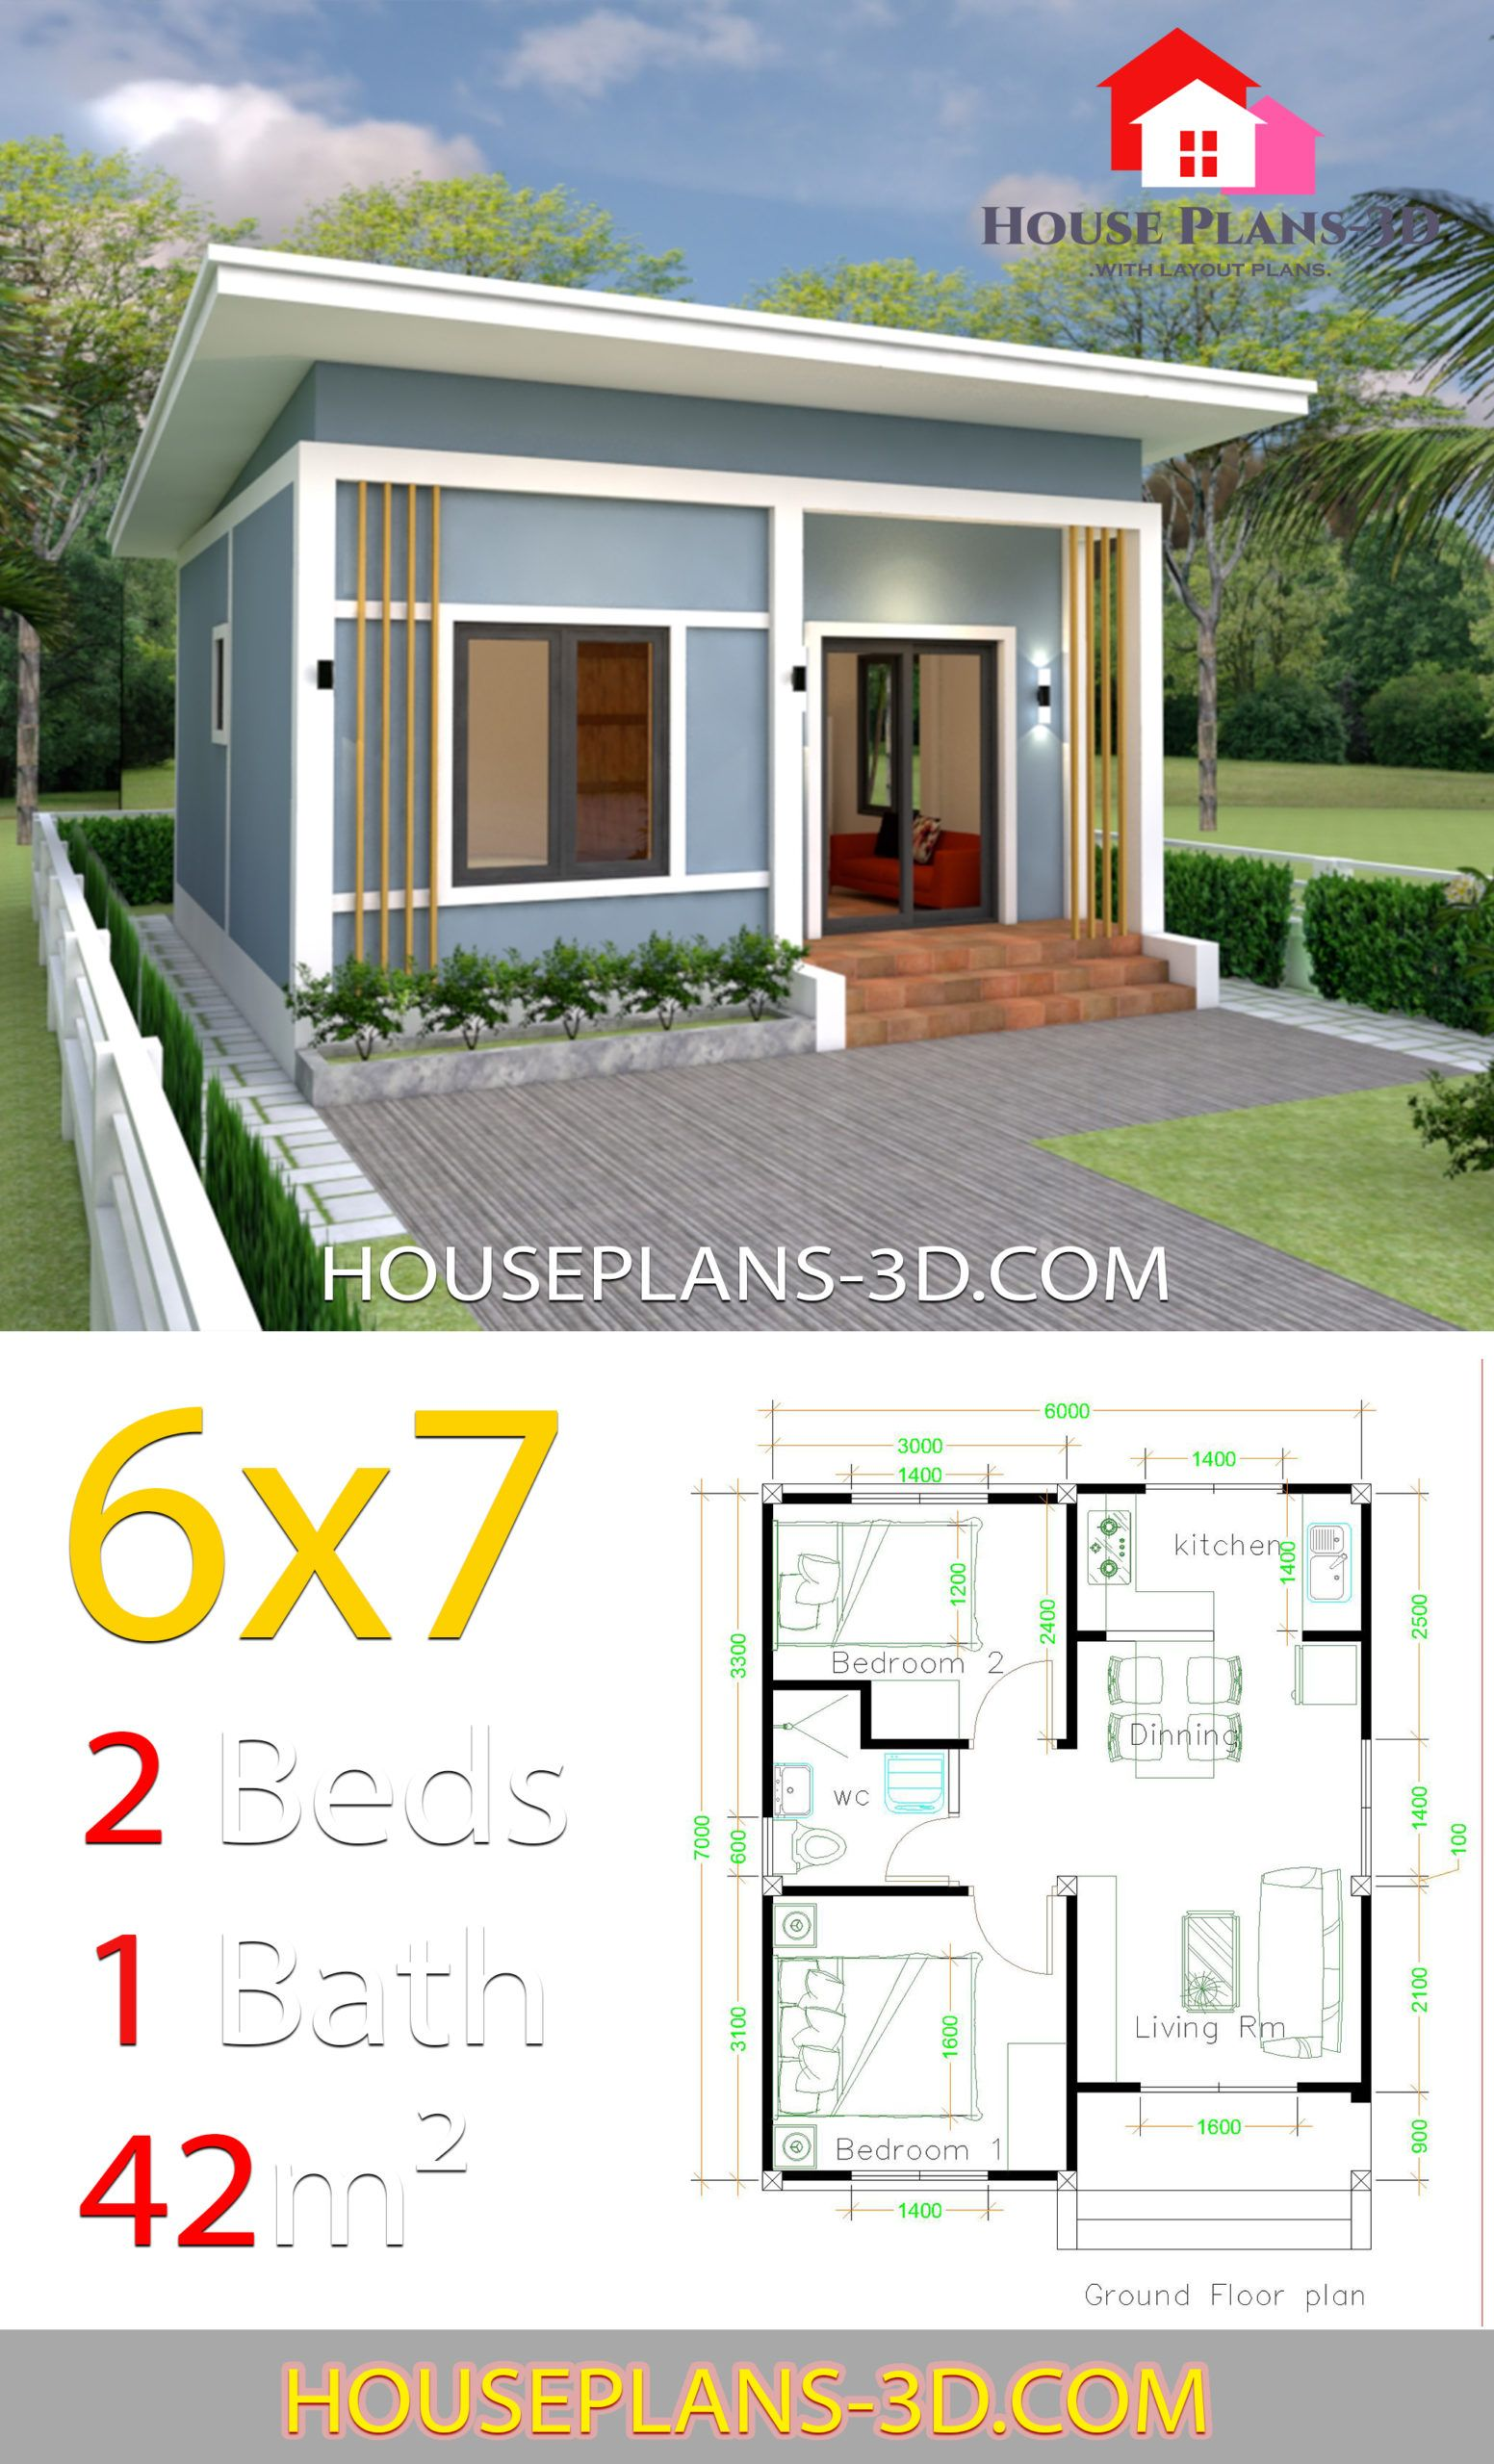 Simple House Plans 6x7 With 2 Bedrooms Shed Roof House Plans 3d In 2020 Small House Architecture Tiny House Design Small House Design